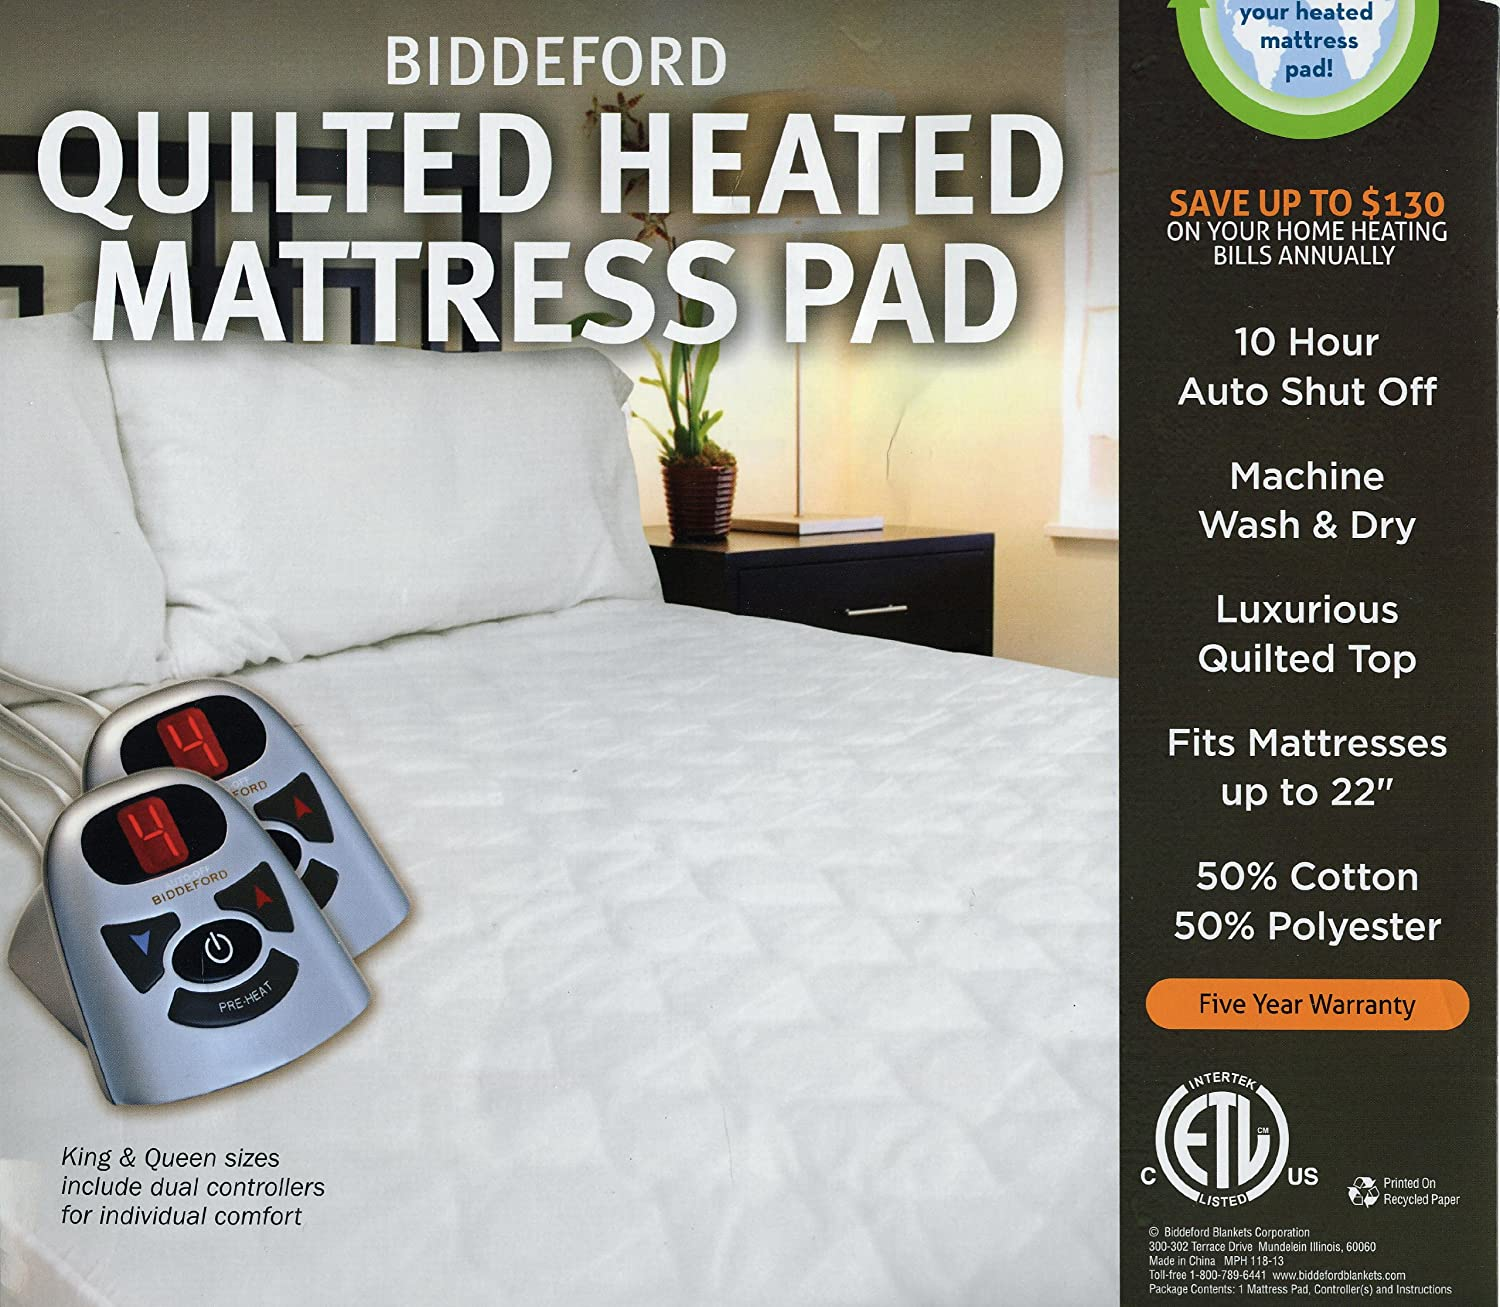 King Size Biddeford Electric Automatic Heated Mattress Pad *New in Package*